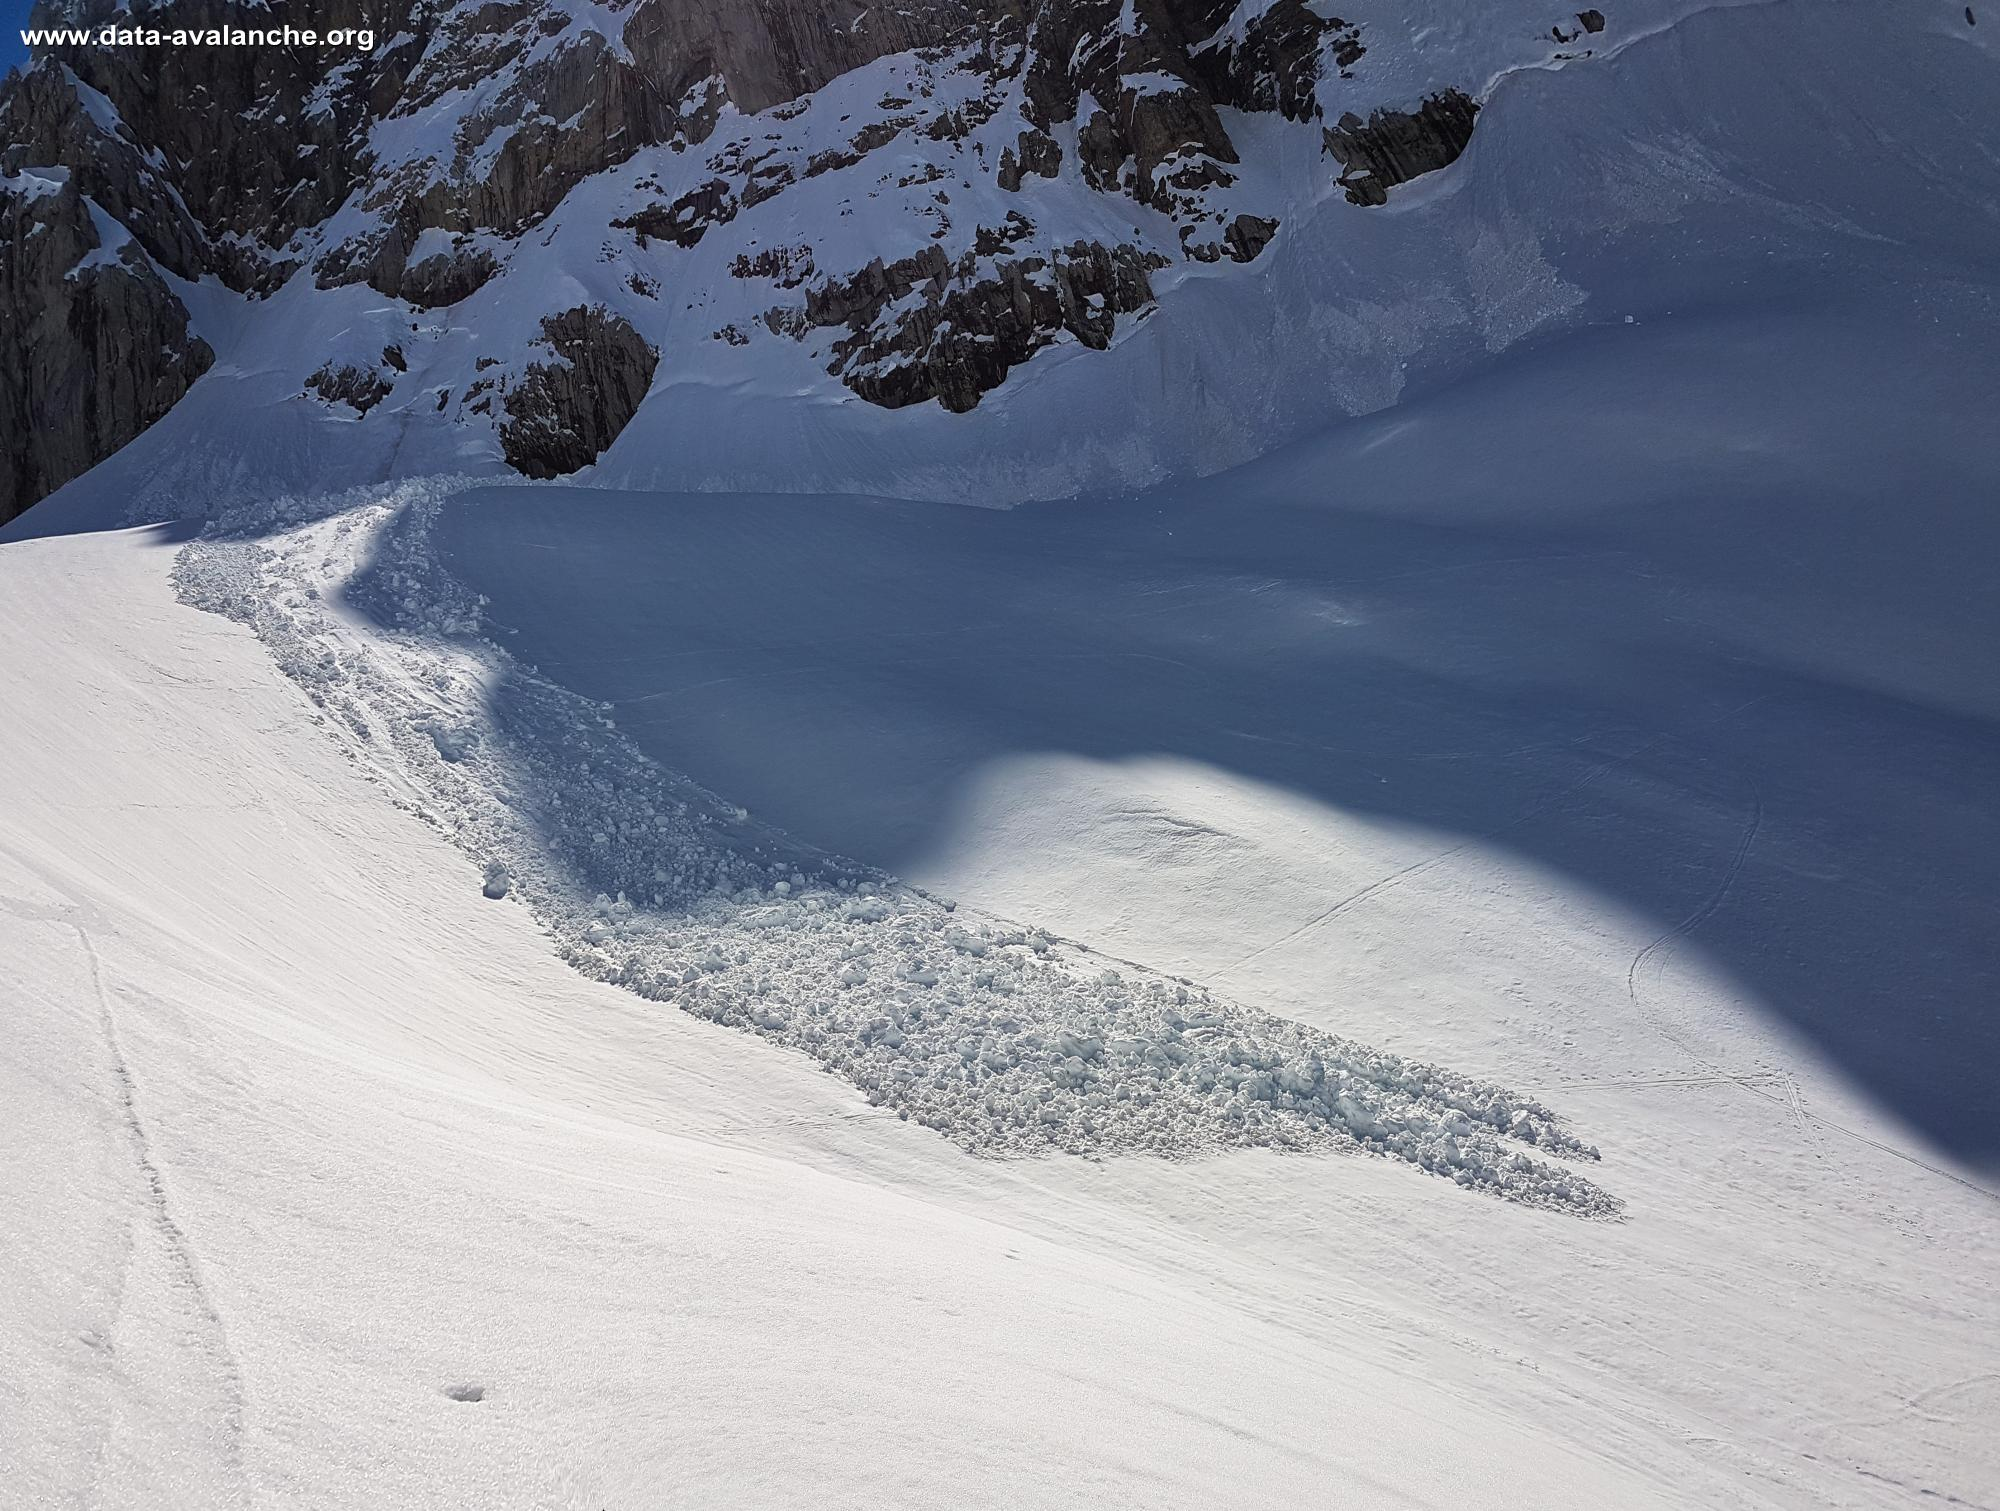 Avalanche Chablais, secteur Dent Blanche Occidentale, Pointes des Dents d'Odaz. - Photo 1 - © Claude Jenkins